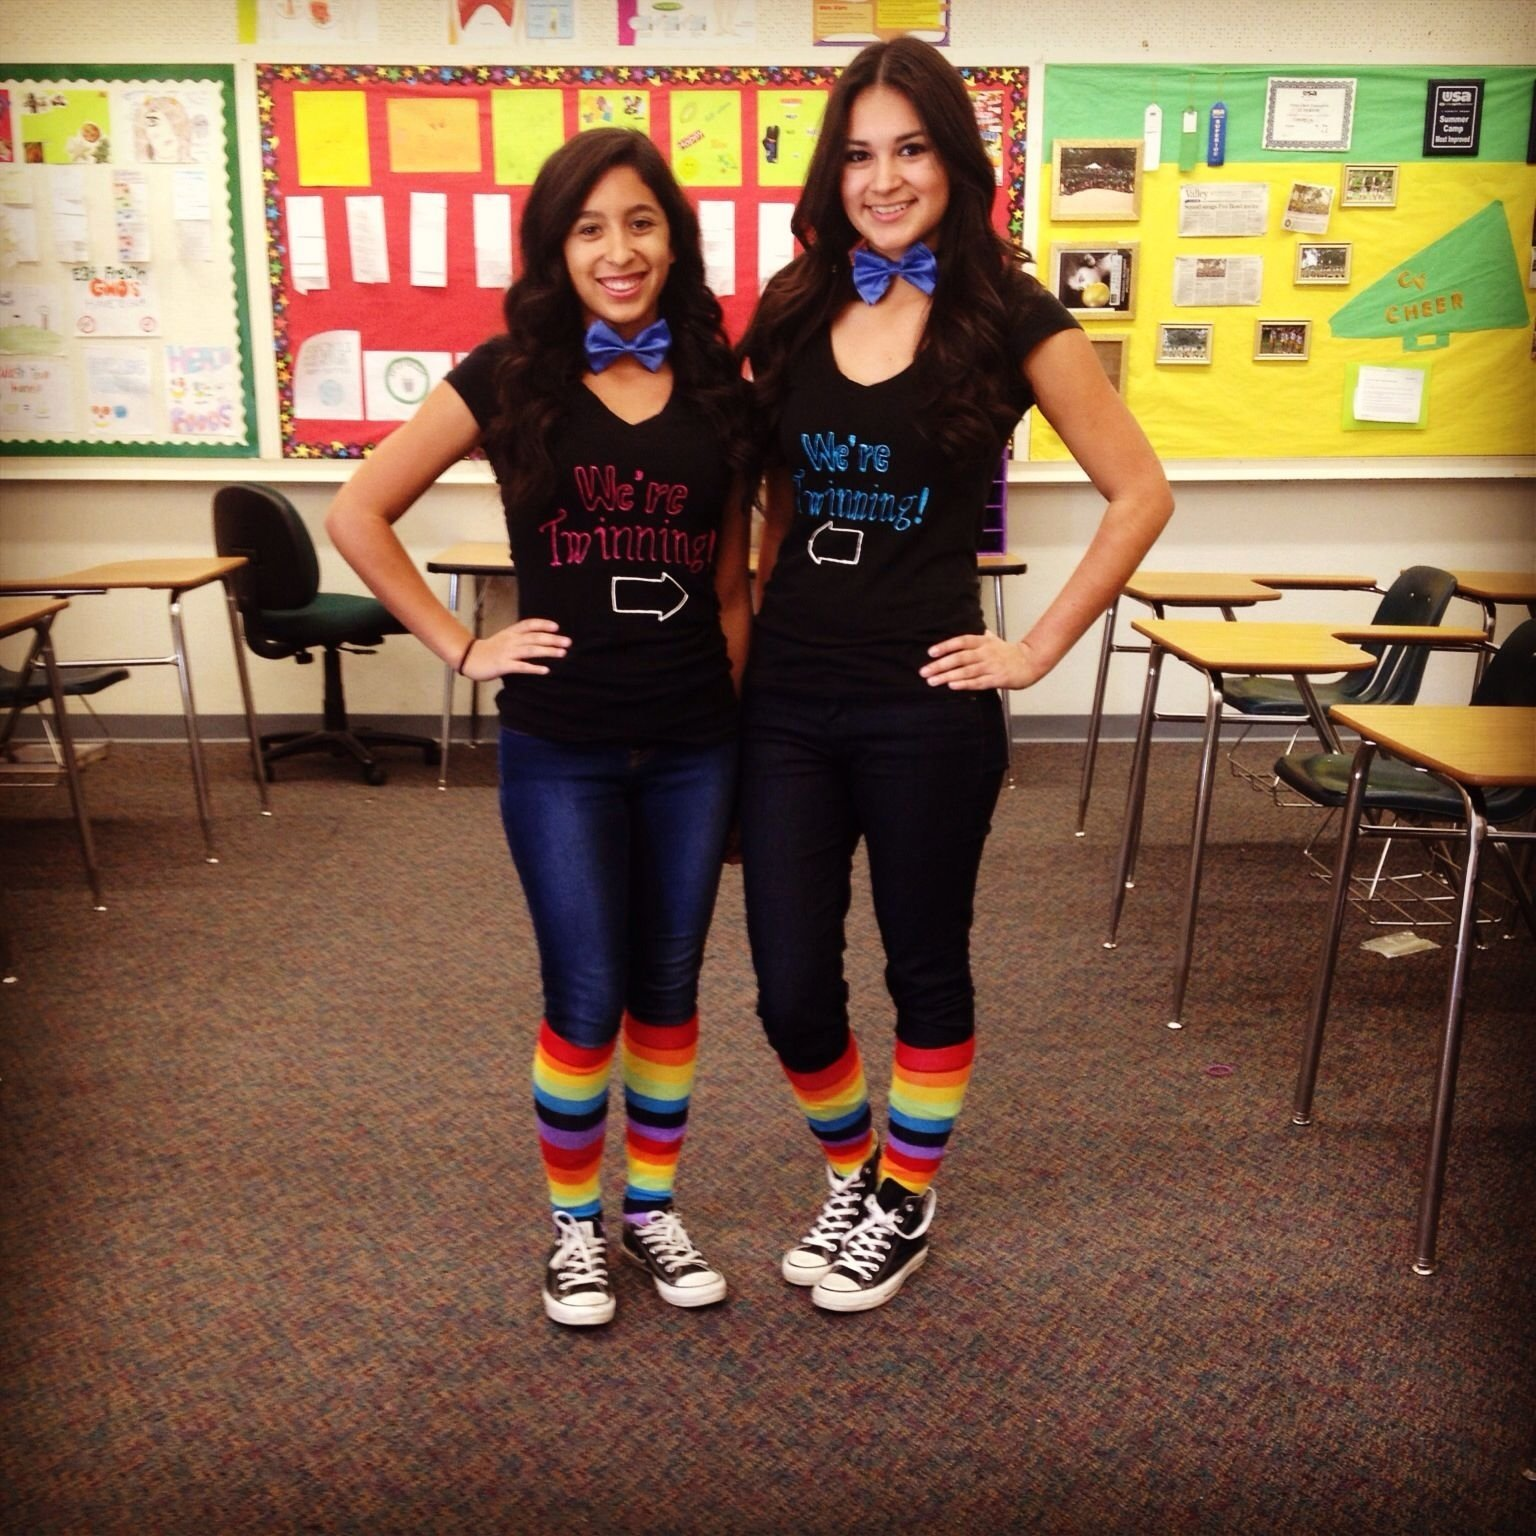 10 Most Popular Twin Ideas For Spirit Week twin day spirit week at school my lifee29da4 pinterest twins 18 2020